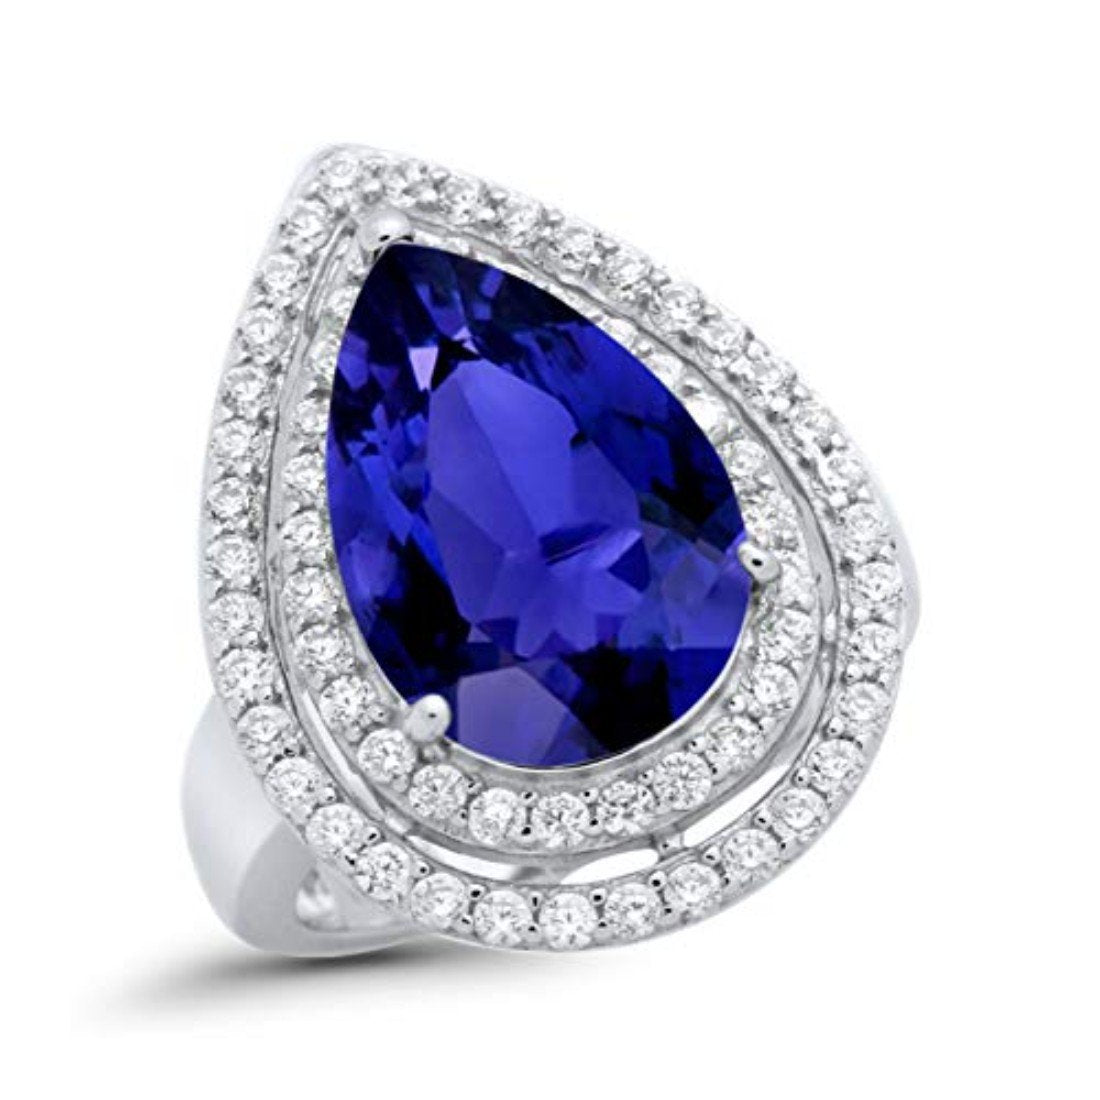 Teardrop Pear Simulated Blue Sapphire CZ Engagement Ring 925 Sterling Silver